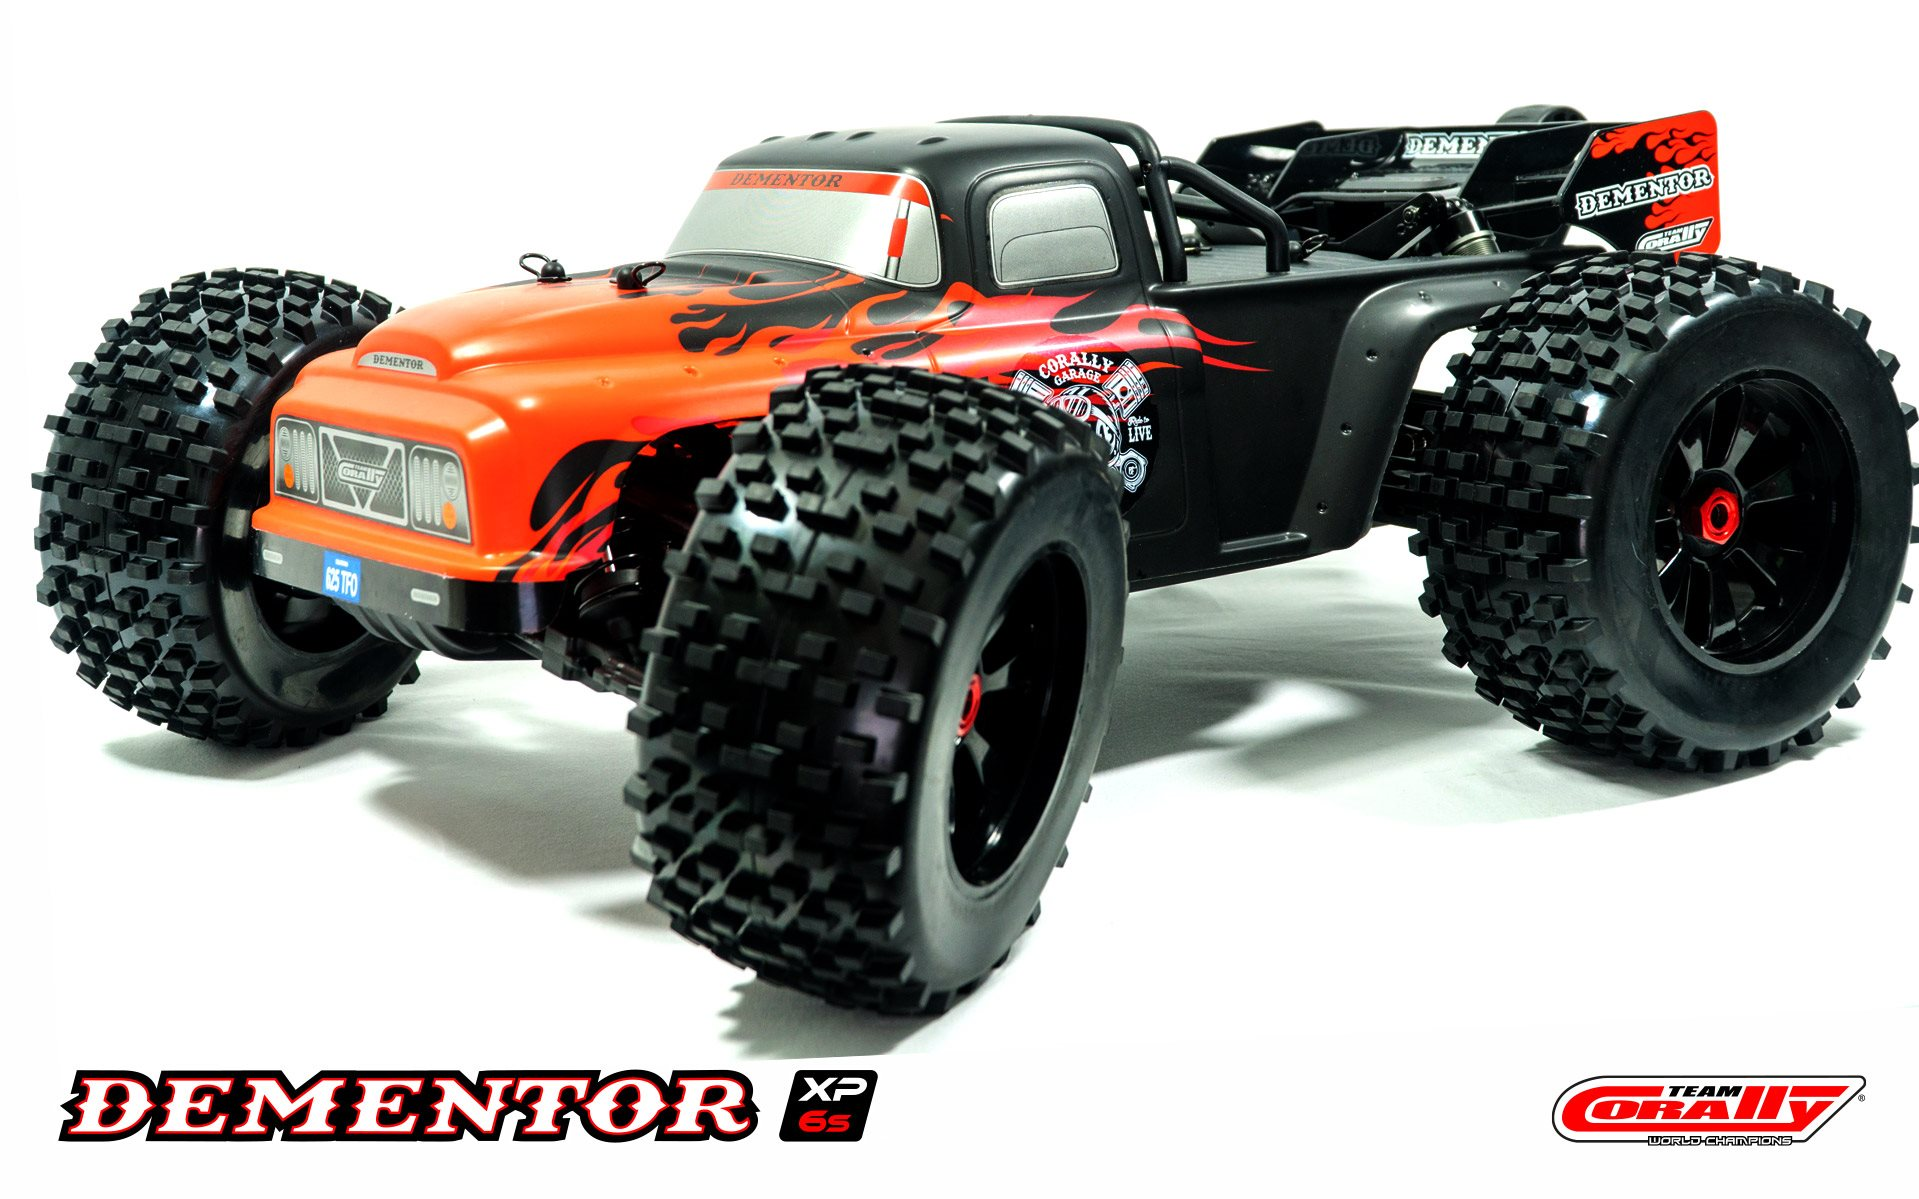 Team Corally 1/8 Dementor Xp 6S 4Wd Monster Truck Brushless Rtr (No Battery O